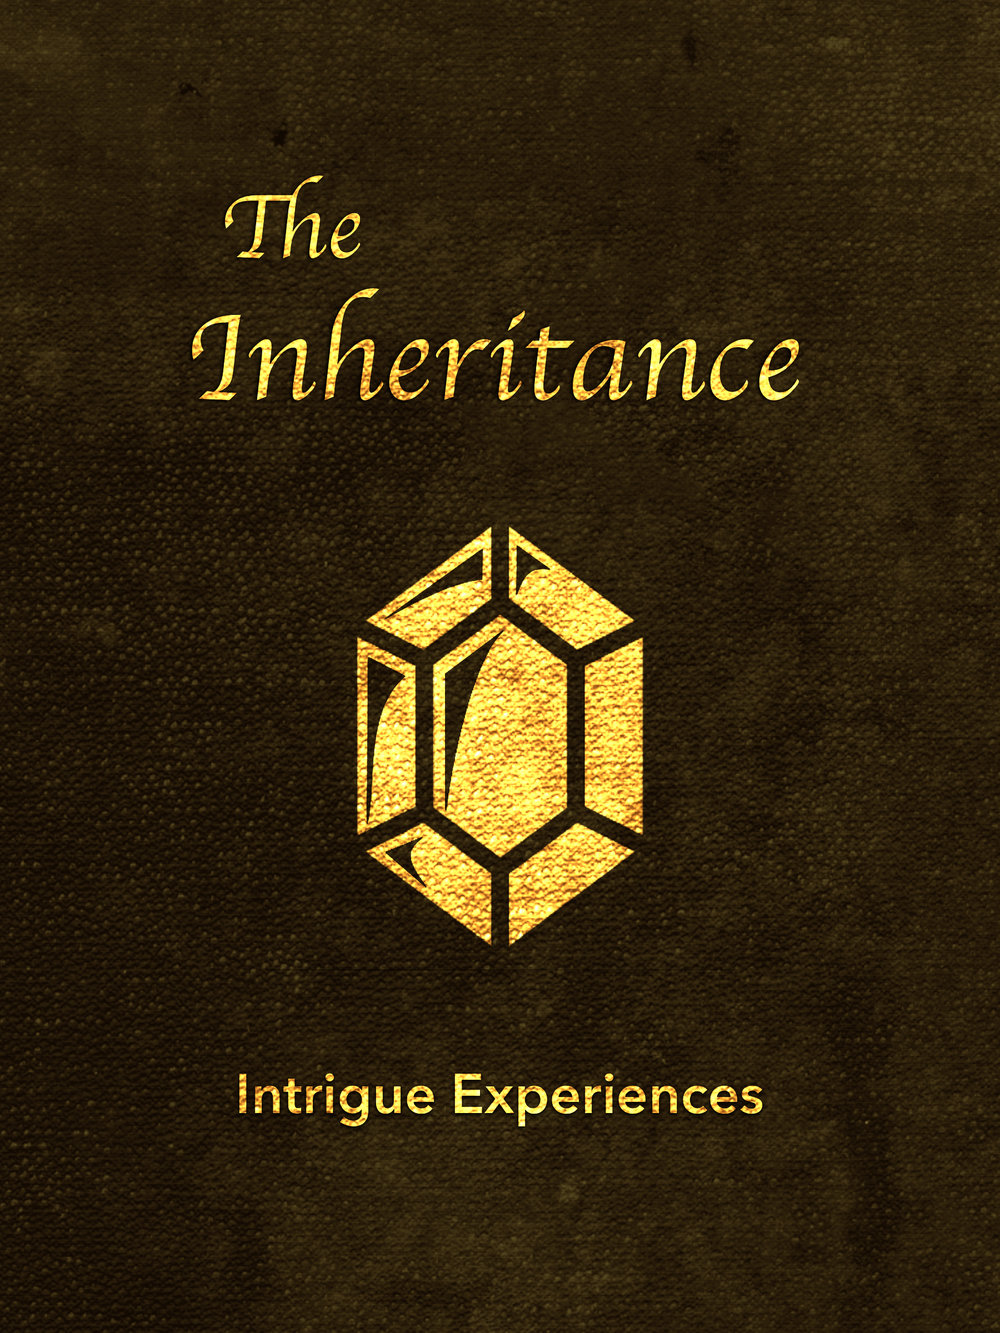 The Inheritance was originally made for the Melting Pot restaurant at Destiny USA. Receive a letter from your estranged uncle with a series of tests to prove your worth and gain his fortune.  This story is available for additional bookings. Contact us if interested.